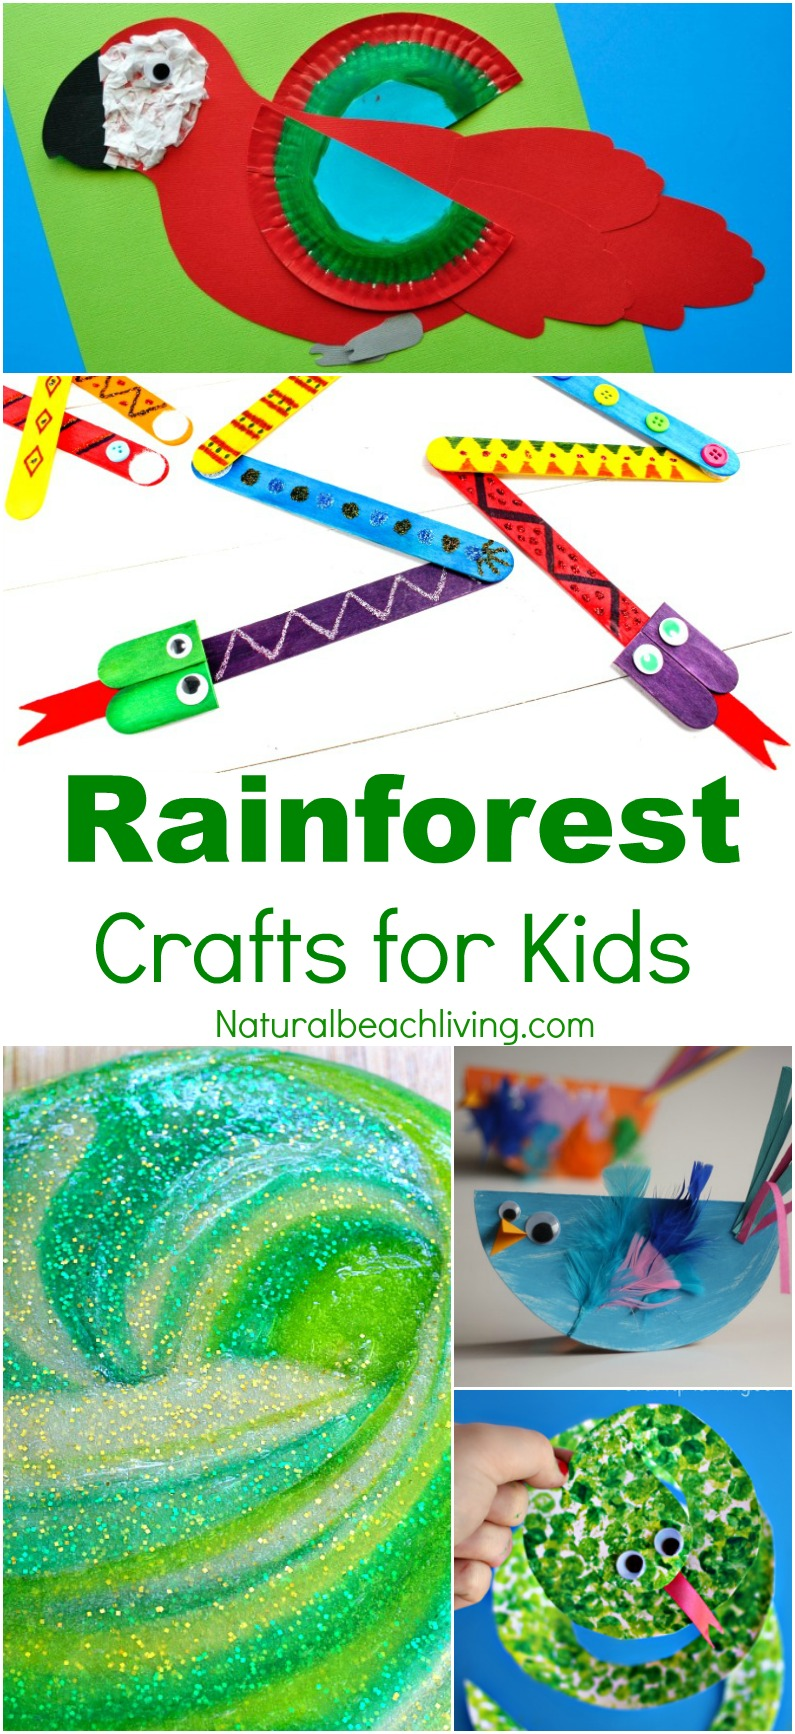 Preschool rain stick craft - 10 Amazing Rainforest Crafts Kids Can Make Rainforest And Jungle Slime Paper Plate